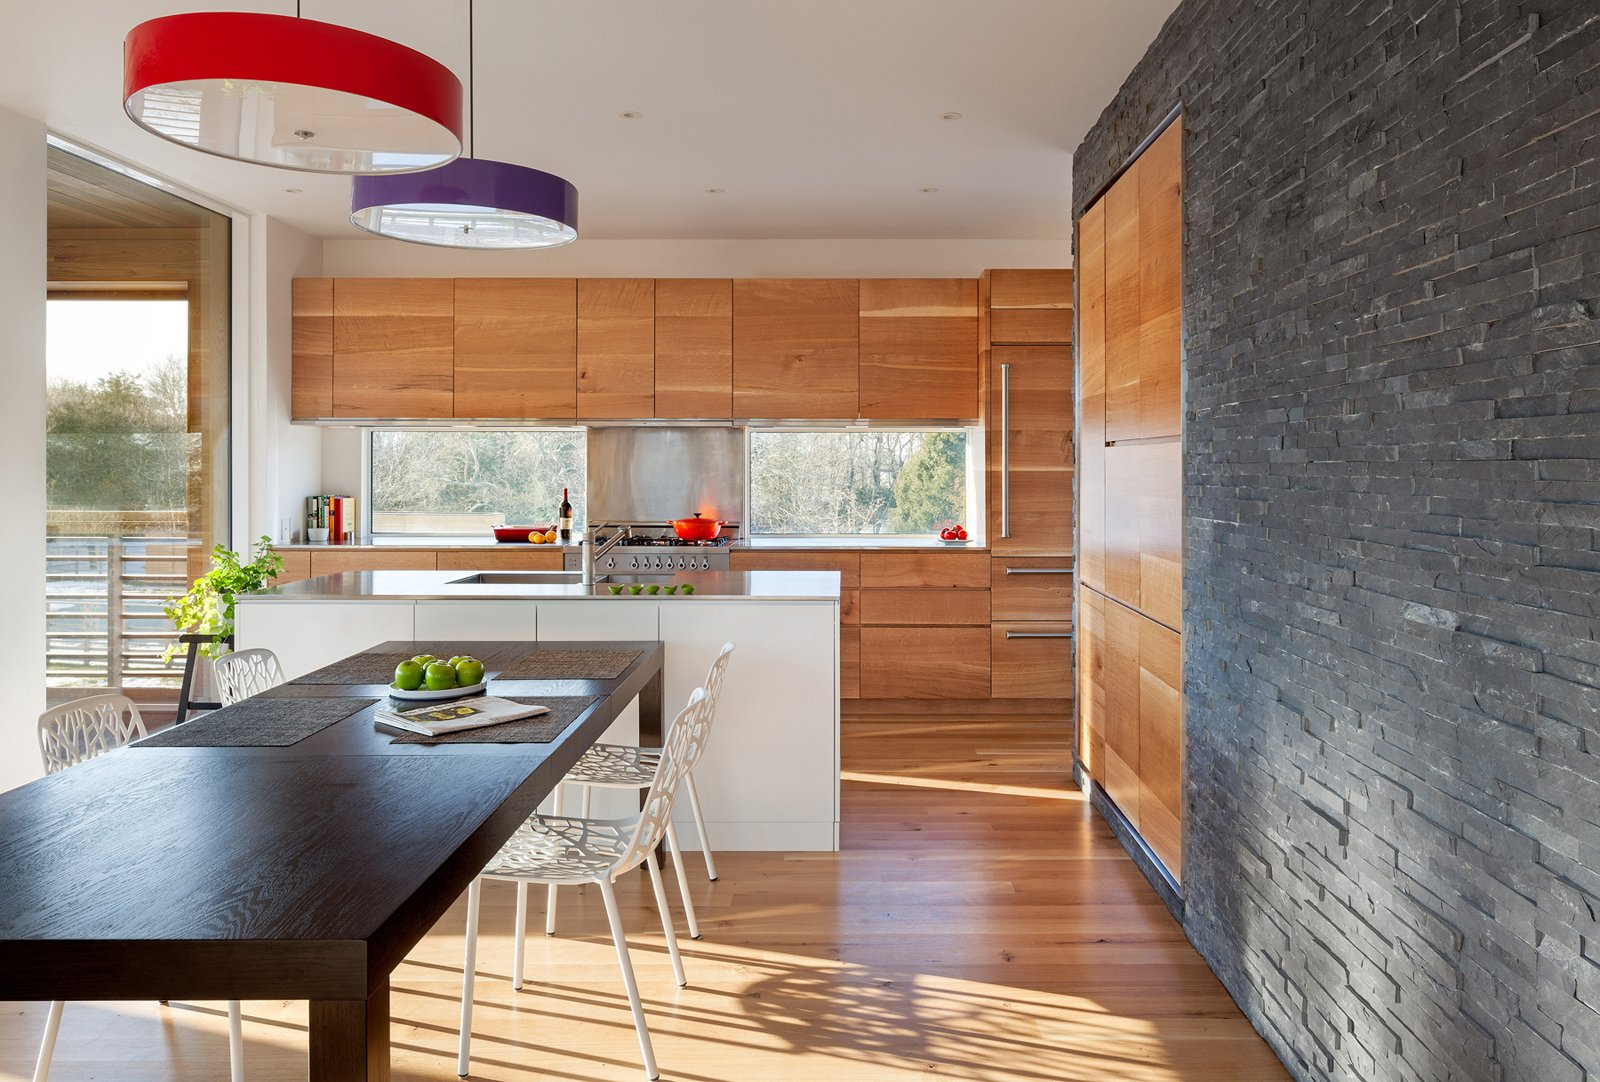 Kitchen, Wood Cabinet, Medium Hardwood Floor, and Pendant Lighting  Watch Hill by Diana Budds